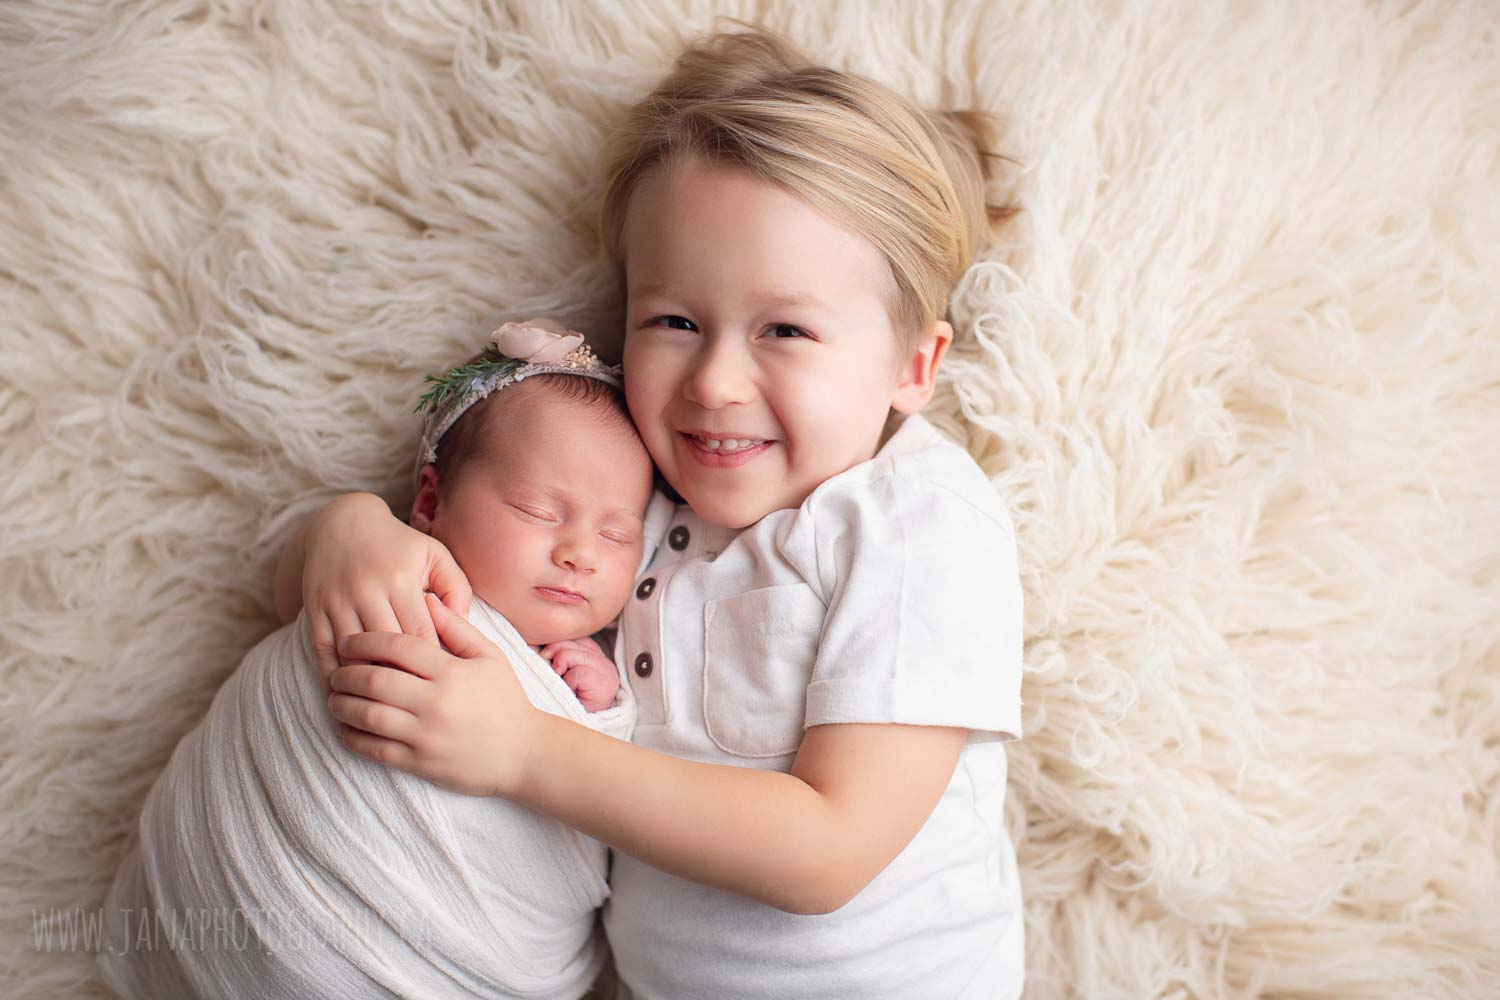 newborn photography with siblings - sister and brother - white setup - vancouver - burnaby